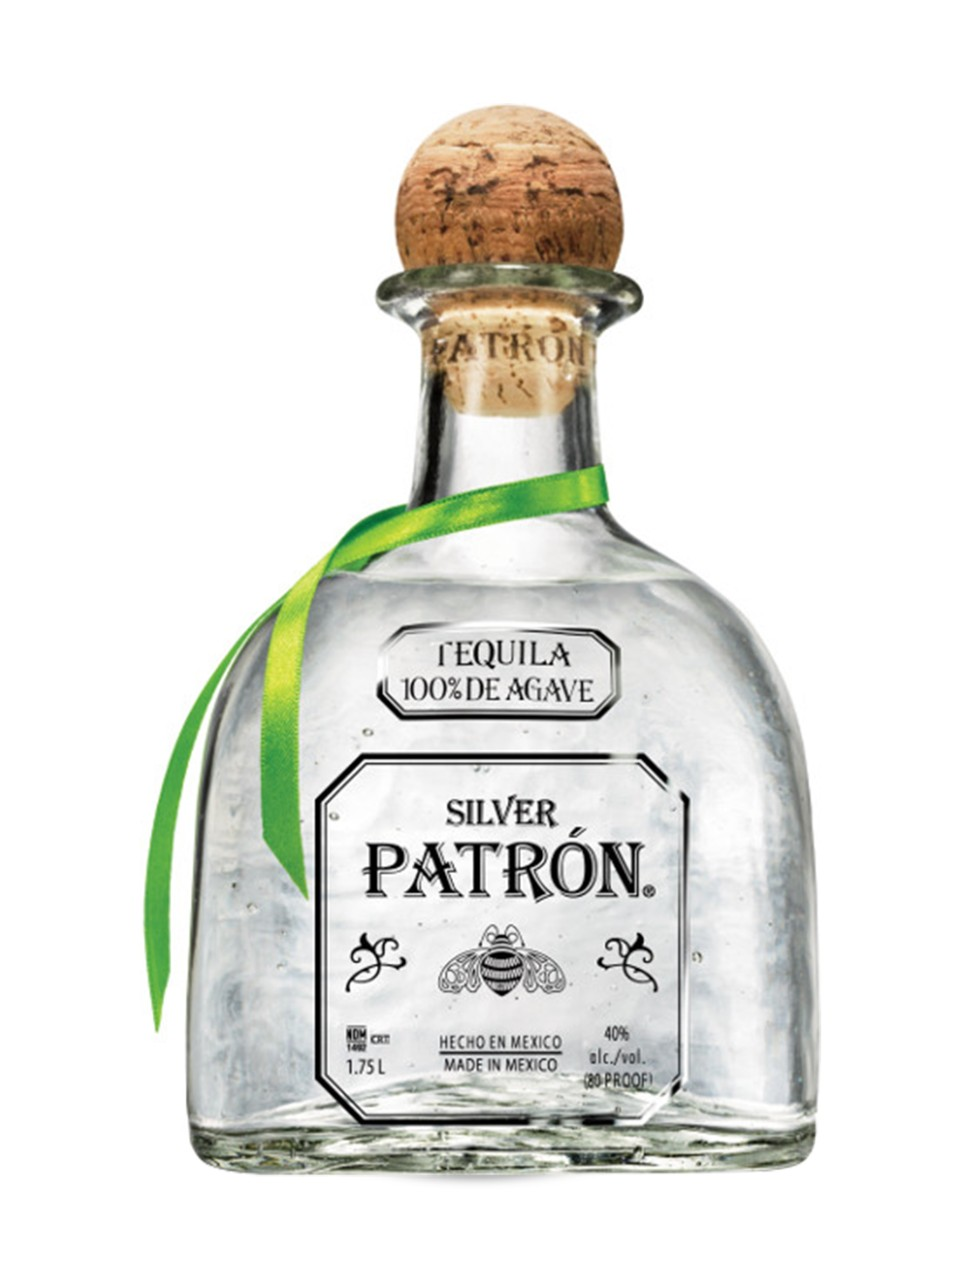 Tequila Silver Patron